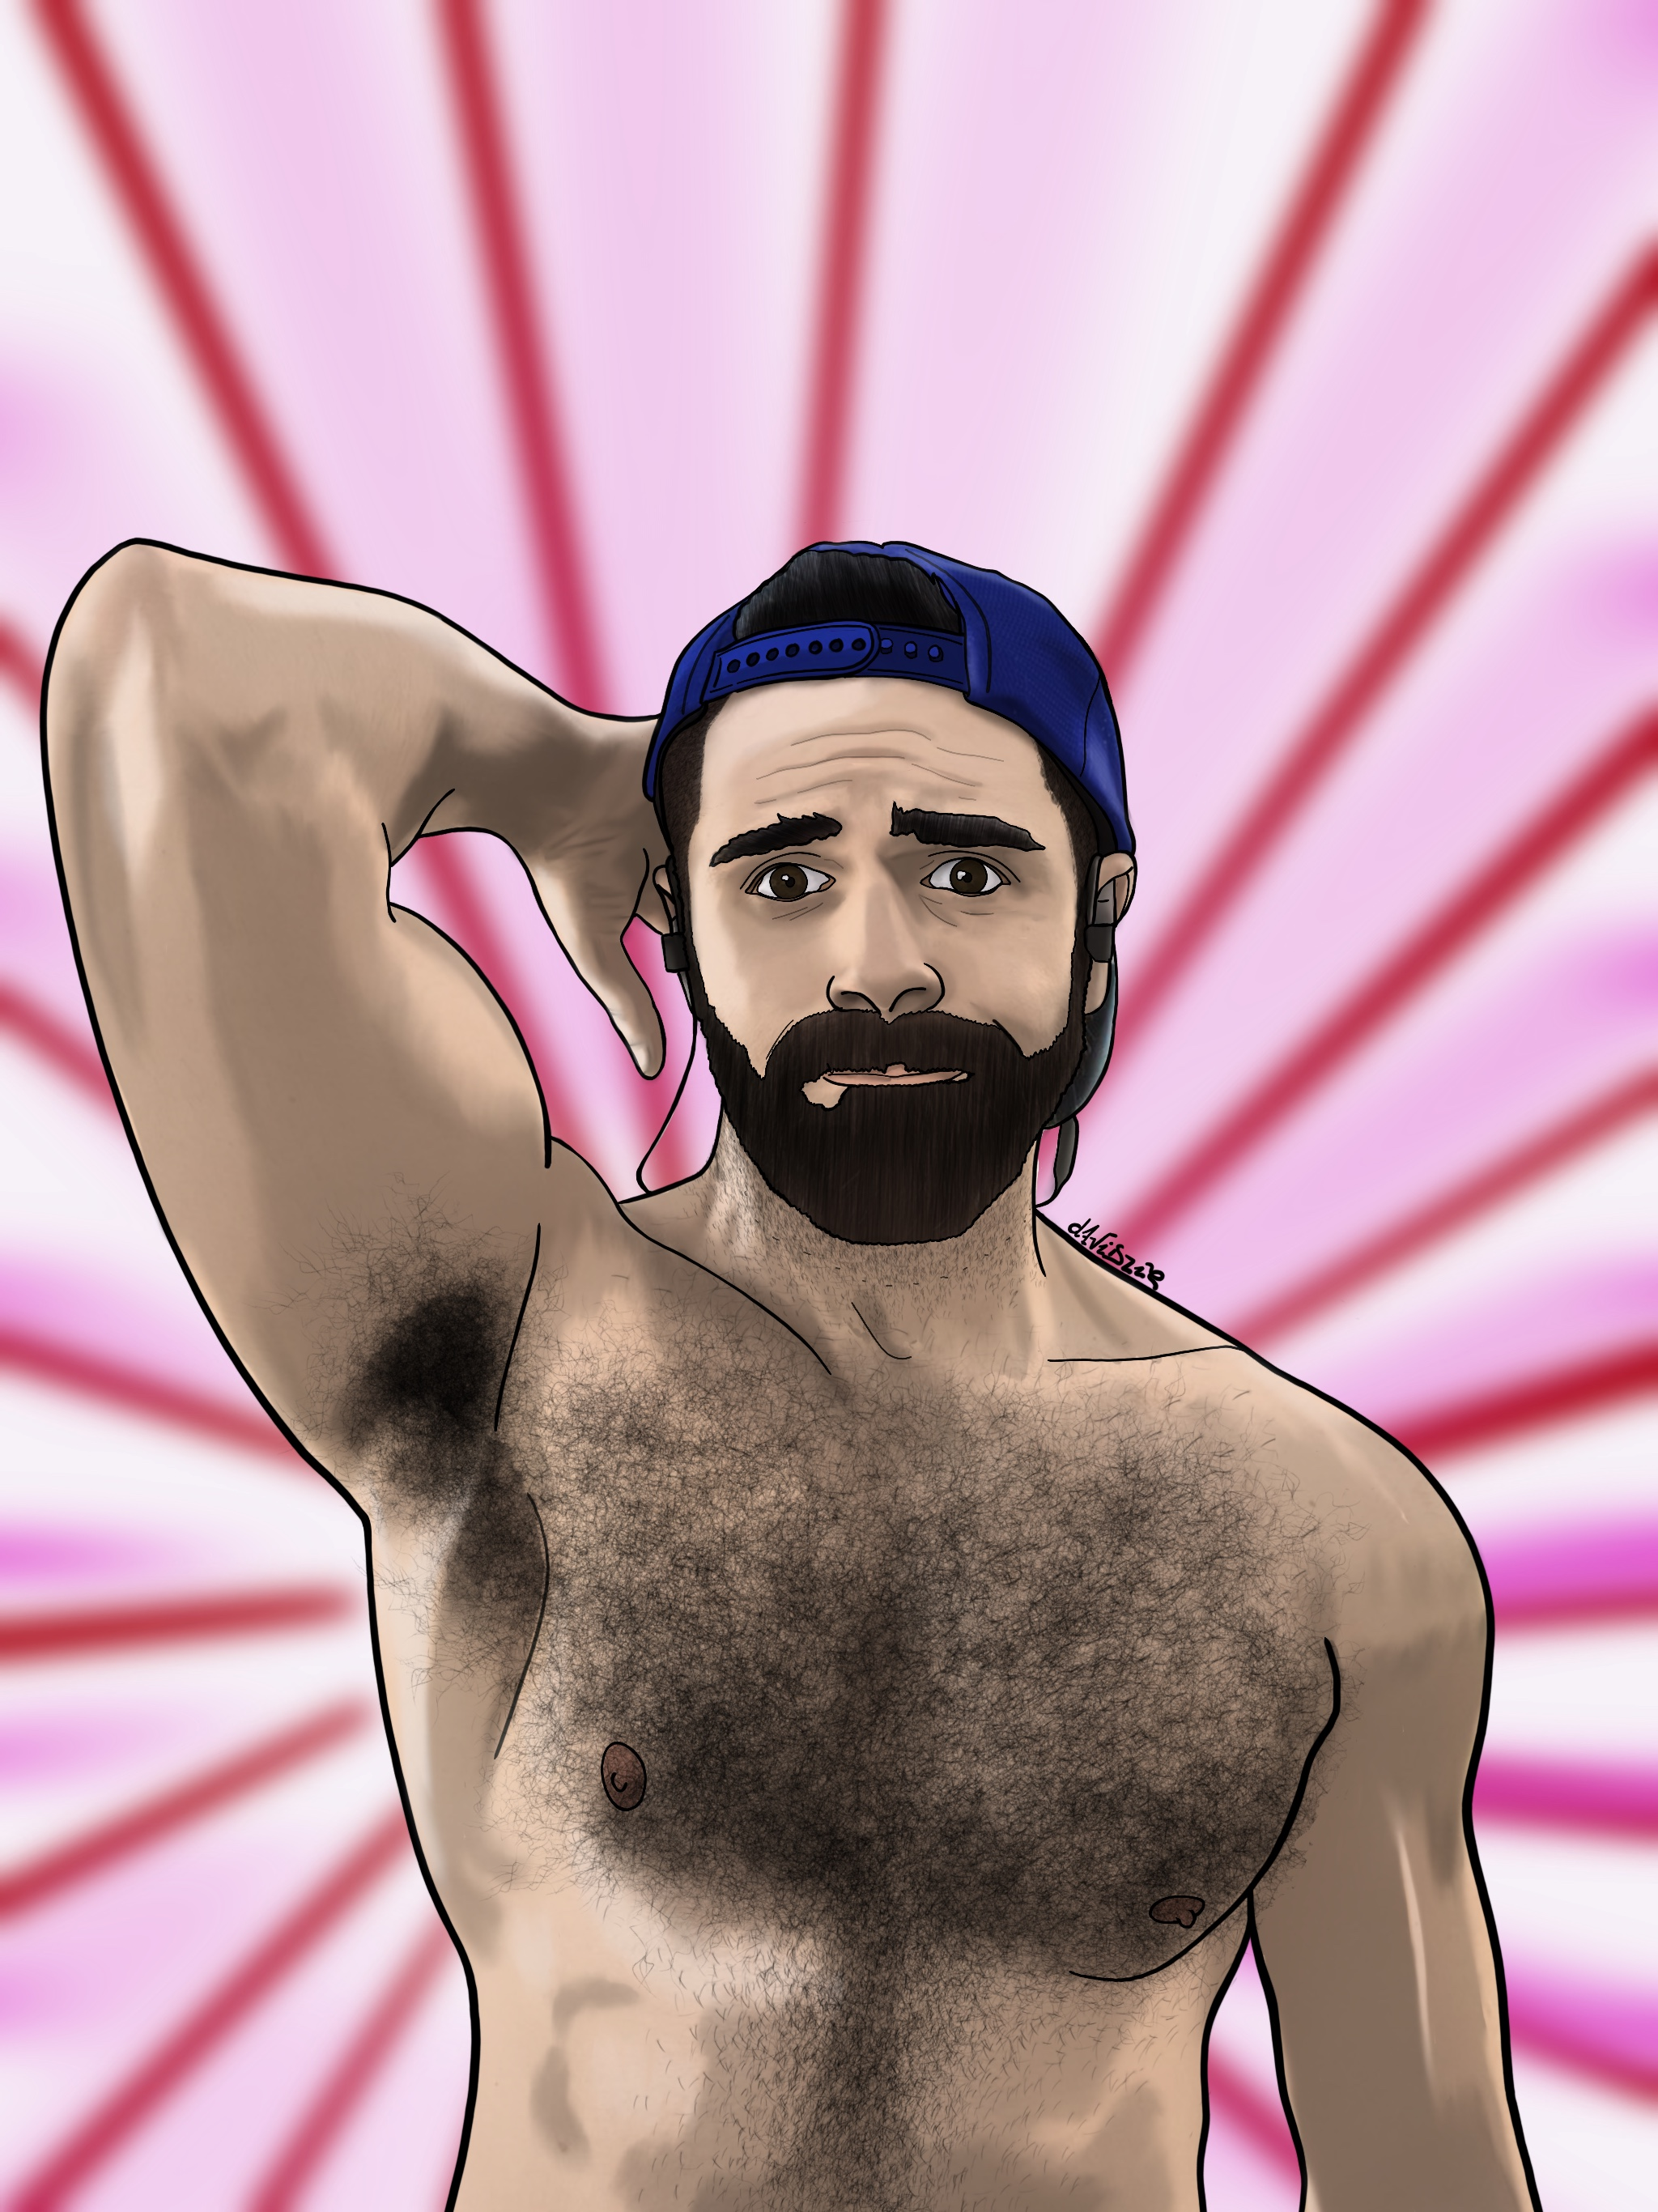 Pink_Hairy_David_Pallás_Gozalo